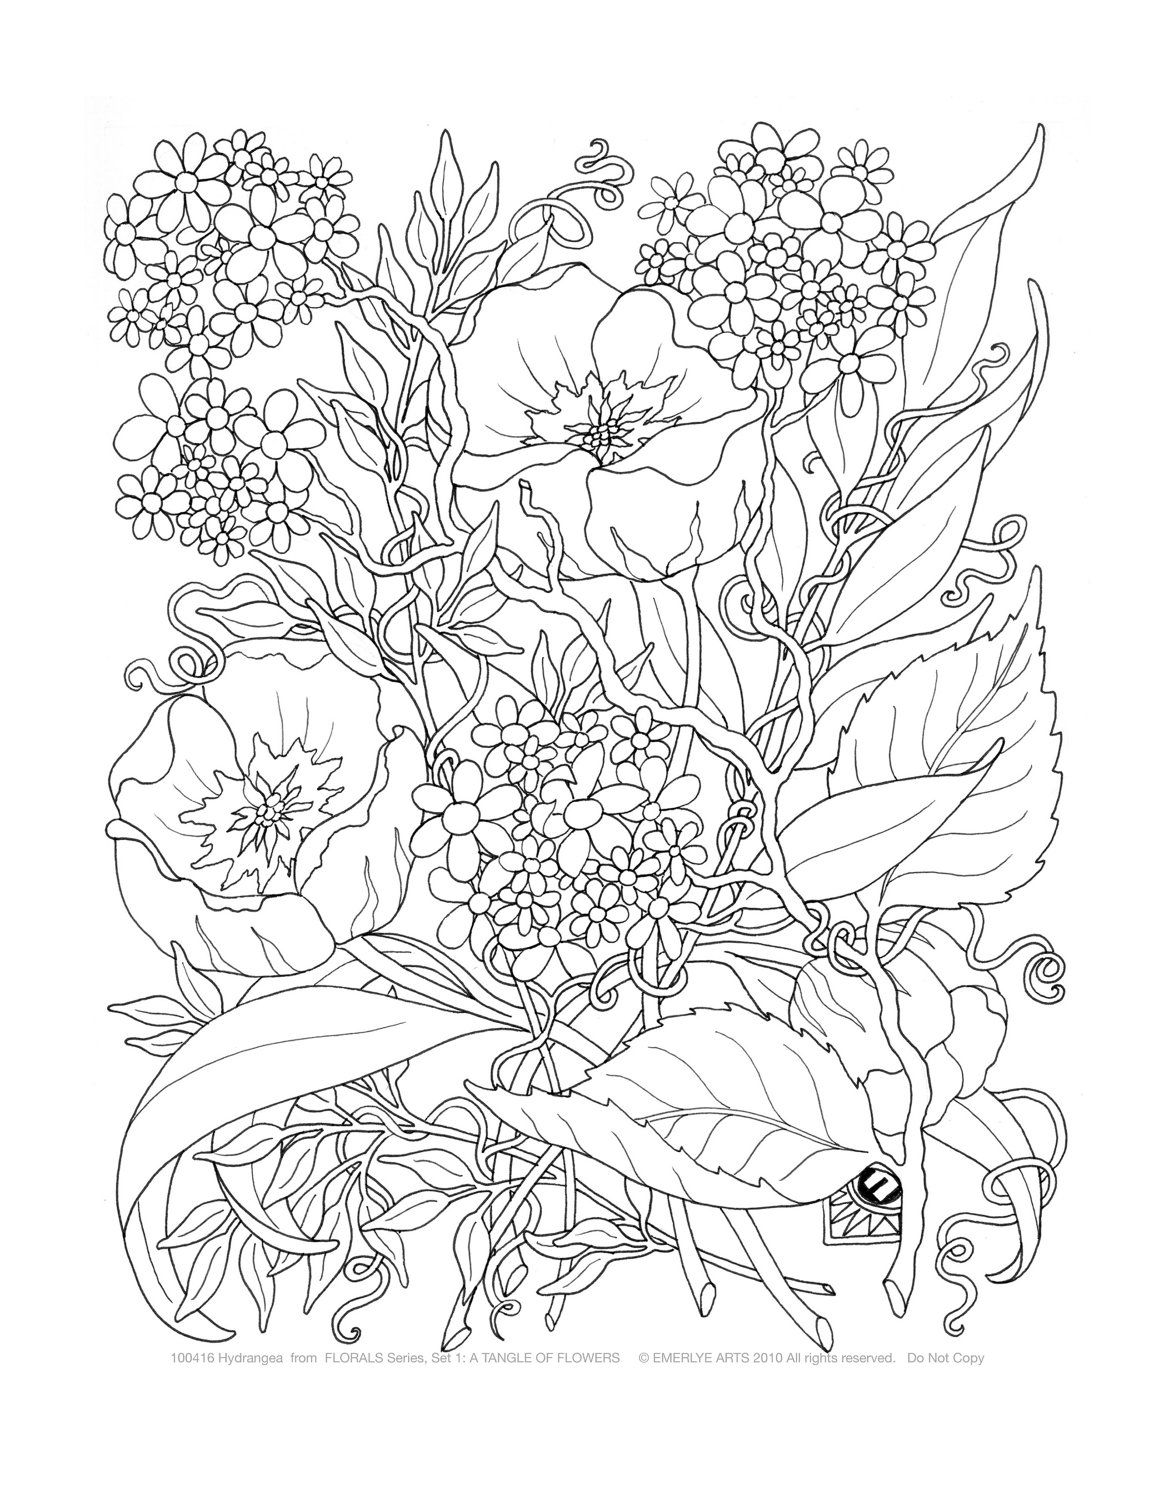 Free printable coloring pages for grown ups - Coloring Pages For Adults Printable Coloring Pages Sheets For Kids Get The Latest Free Coloring Pages For Adults Images Favorite Coloring Pages To Print